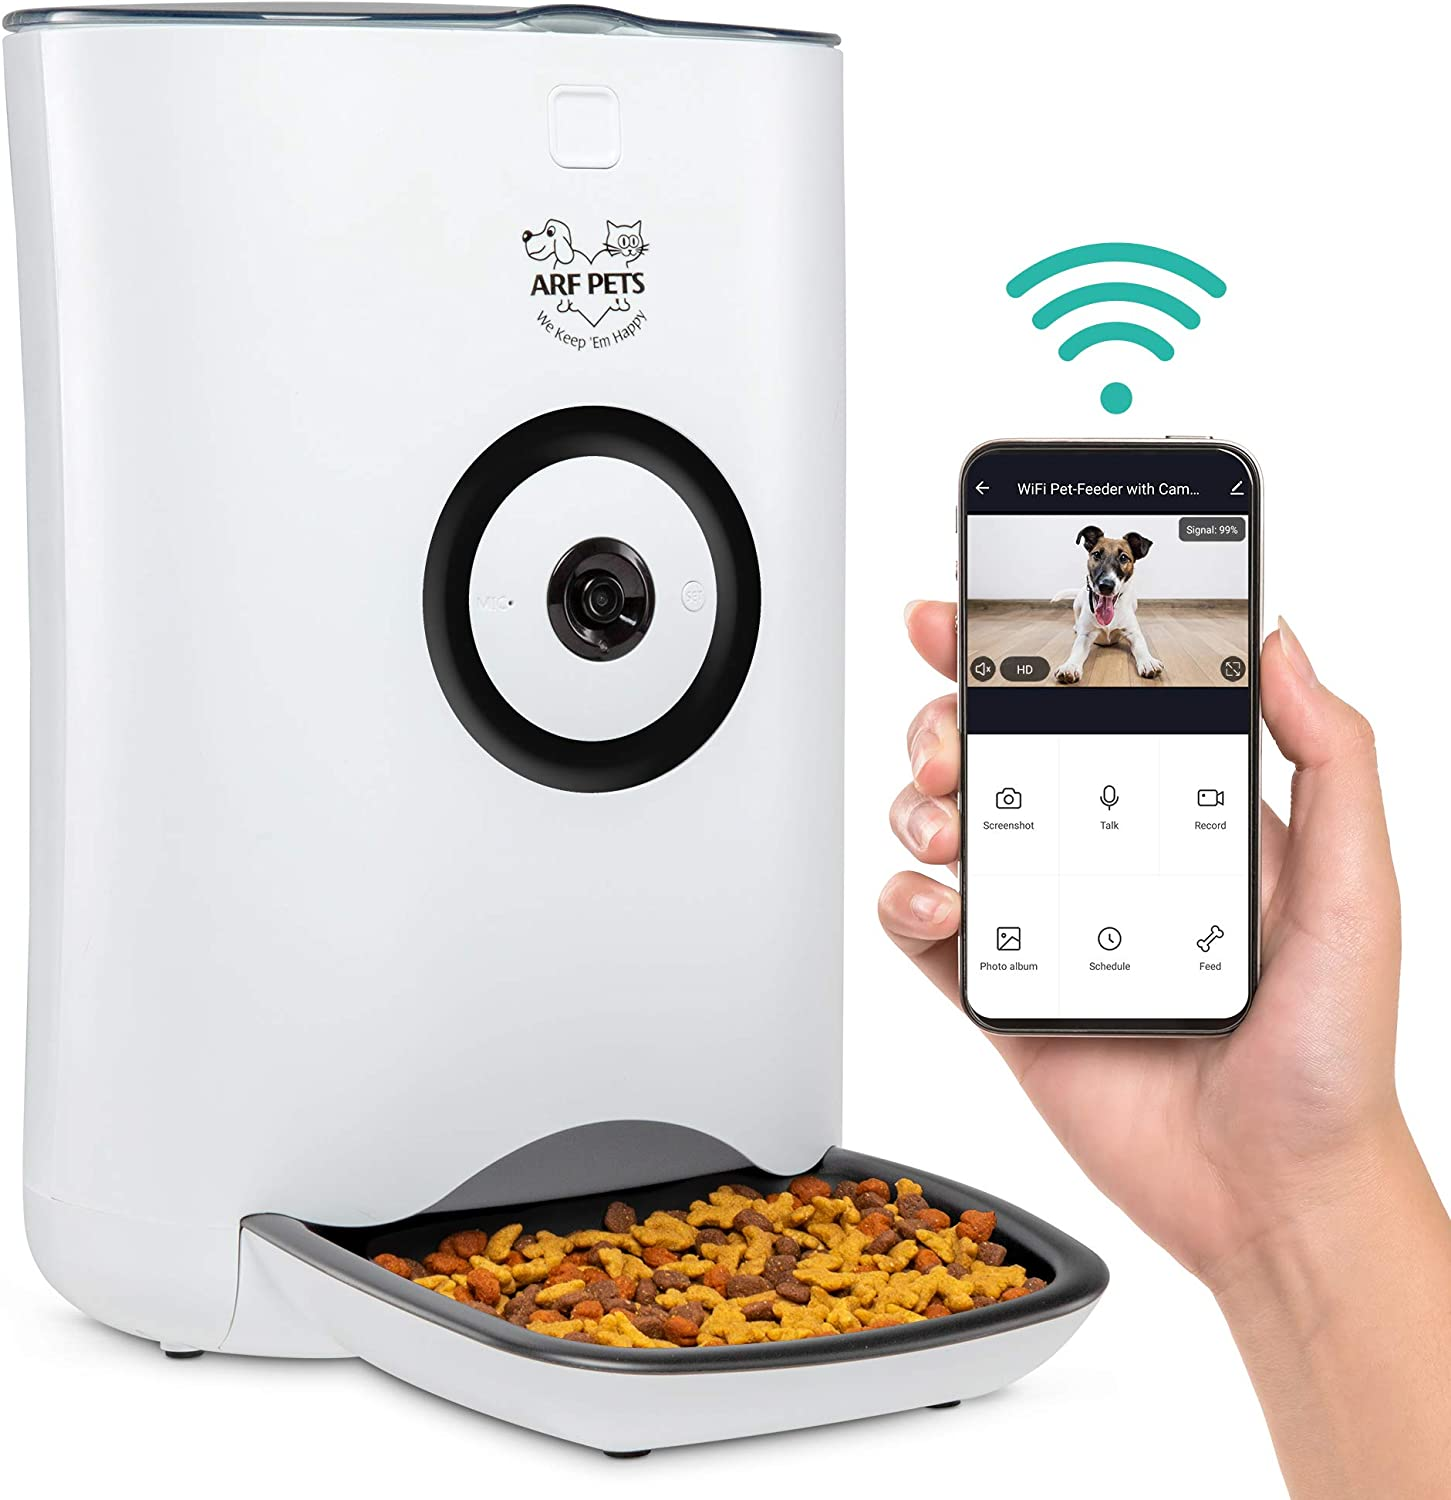 Arf Pets Smart Automatic Pet Feeder with Wi-Fi, HD Camera with Voice and Video Recording, Programmable Food Dispenser for Dogs & Cats with Easy App-Controlled, 20-Cup Capacity, for iPhone & Android